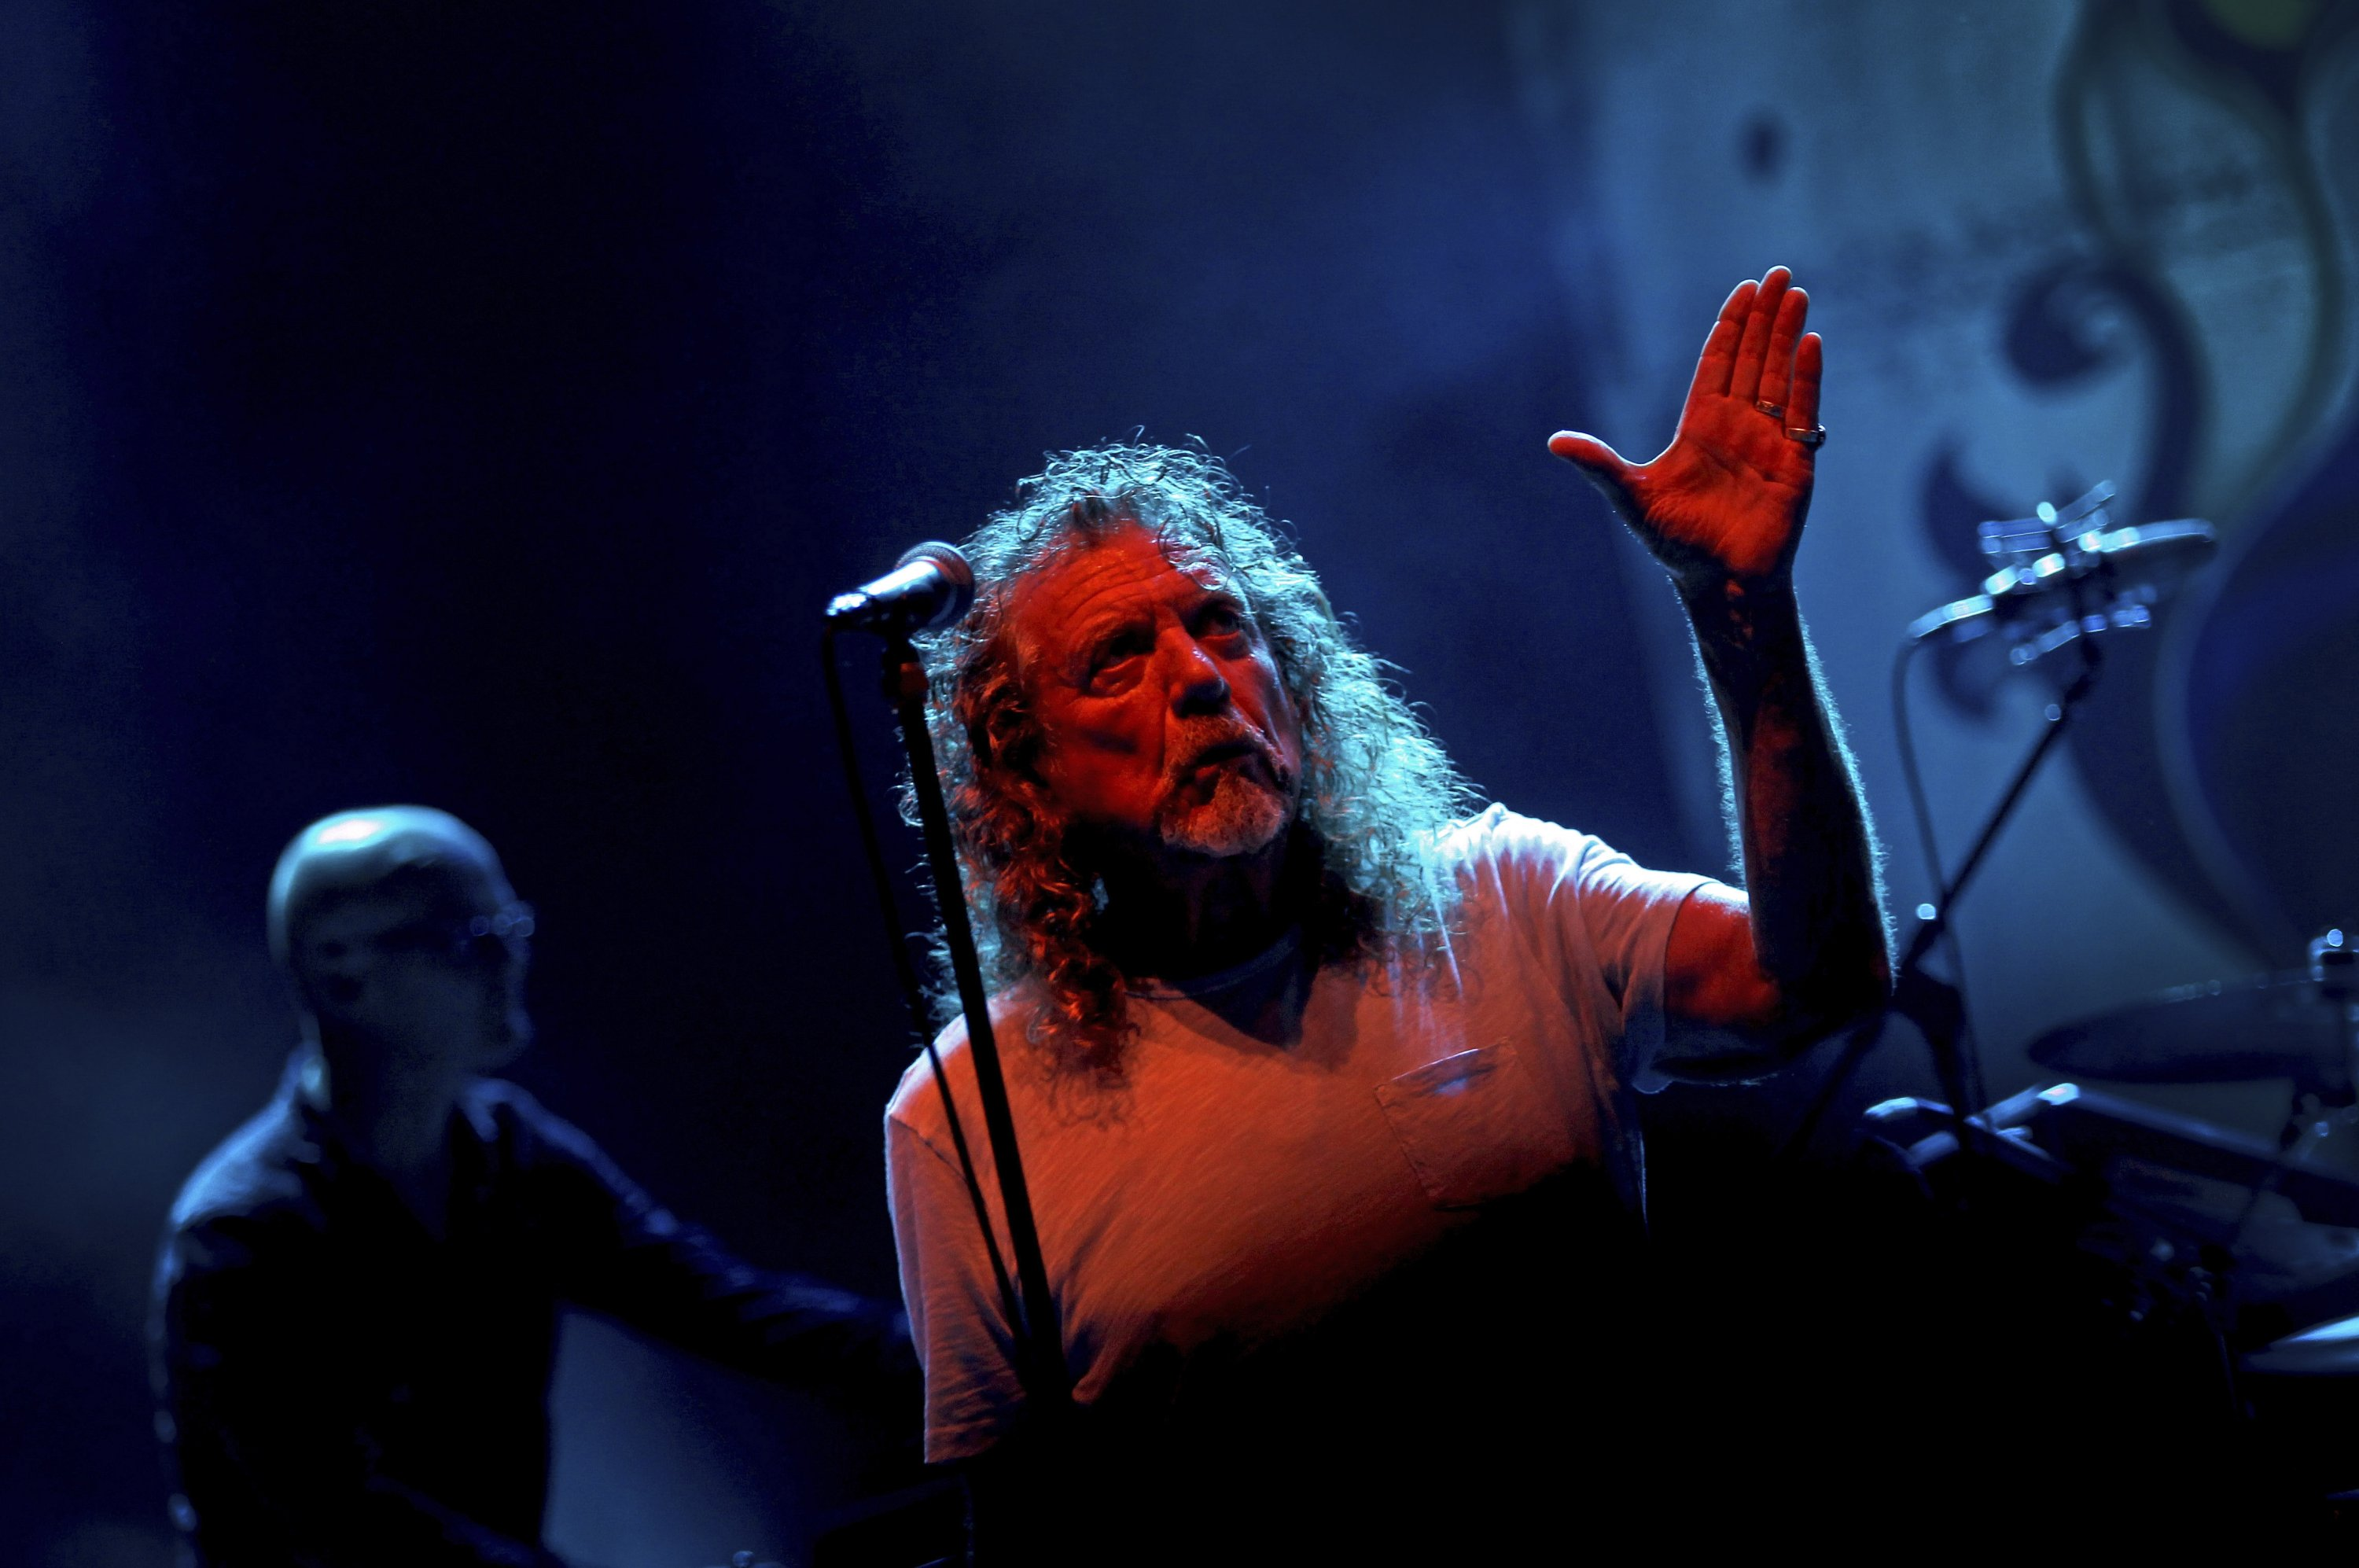 Robert Plant performs during the Timbre Rock and Roots concert in Singapore, March 21, 2013. (AP Photo)